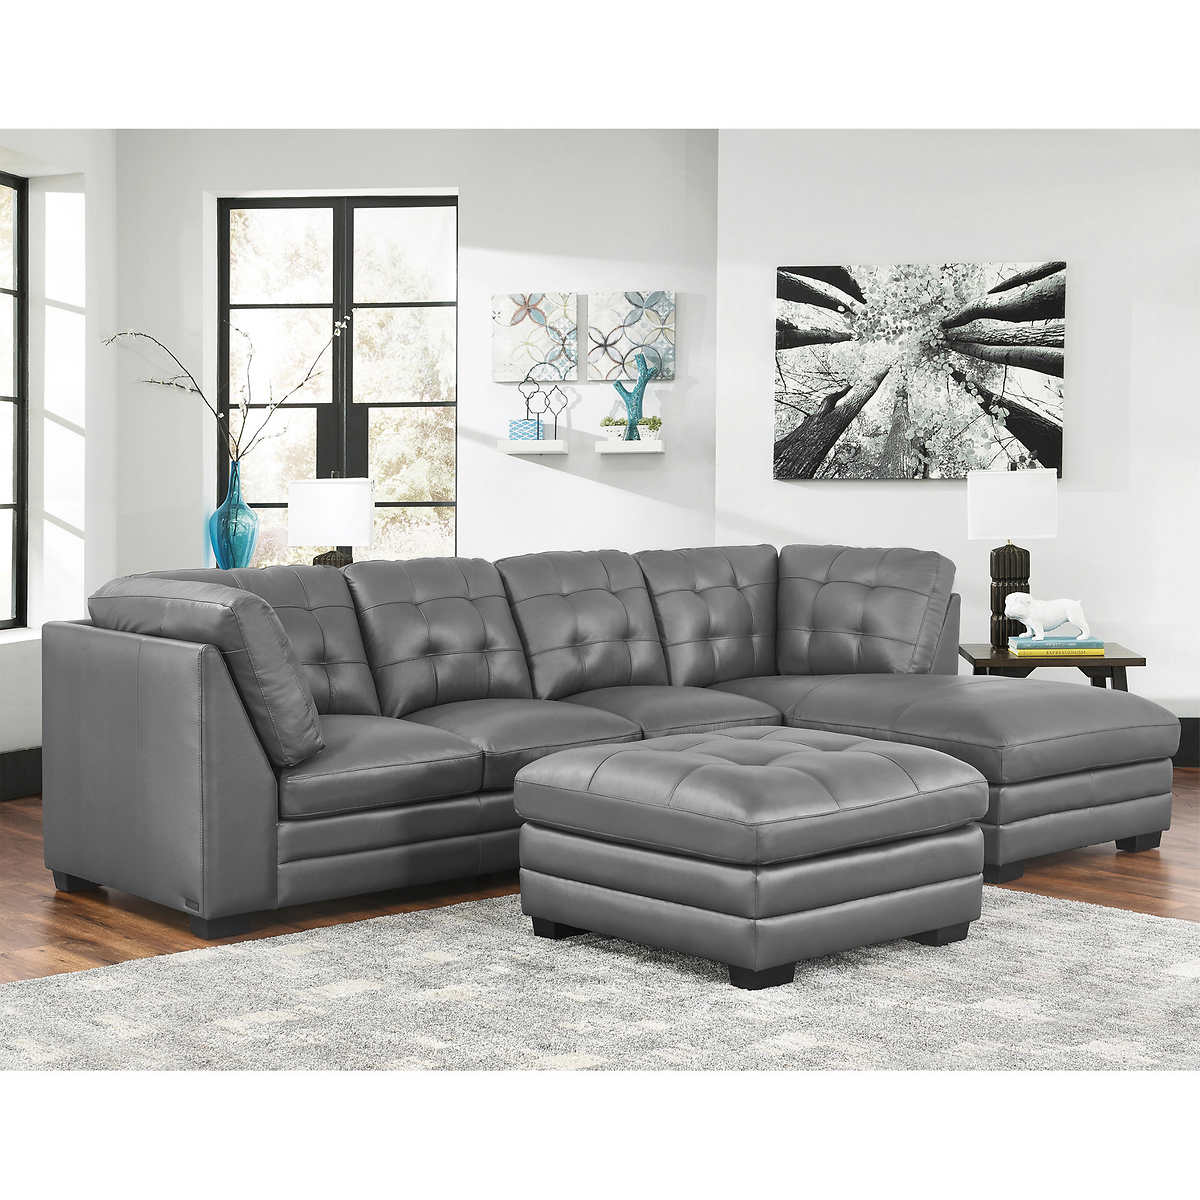 Lawrence Top Grain Leather Sectional With Ottoman